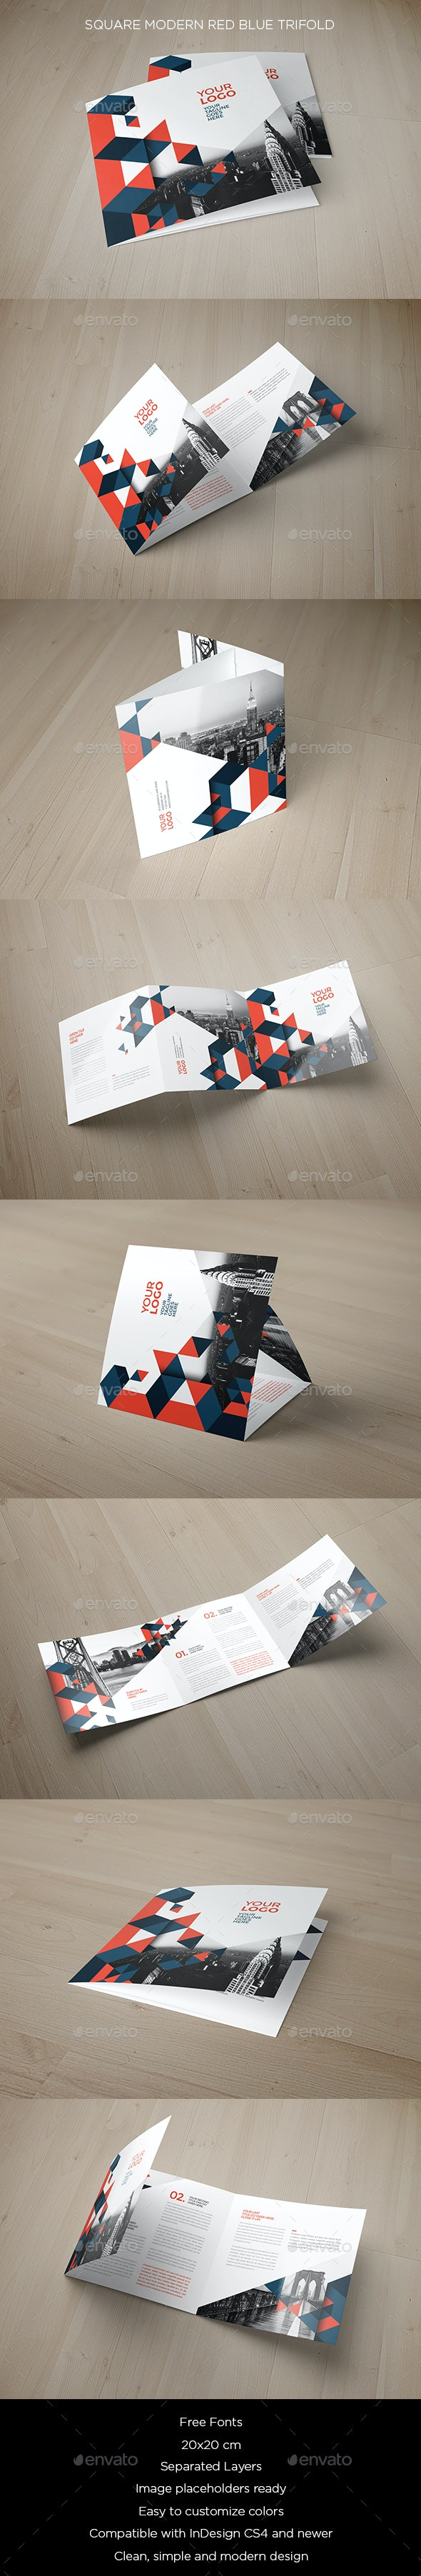 Square Modern Red Blue Trifold - Brochures Print Templates